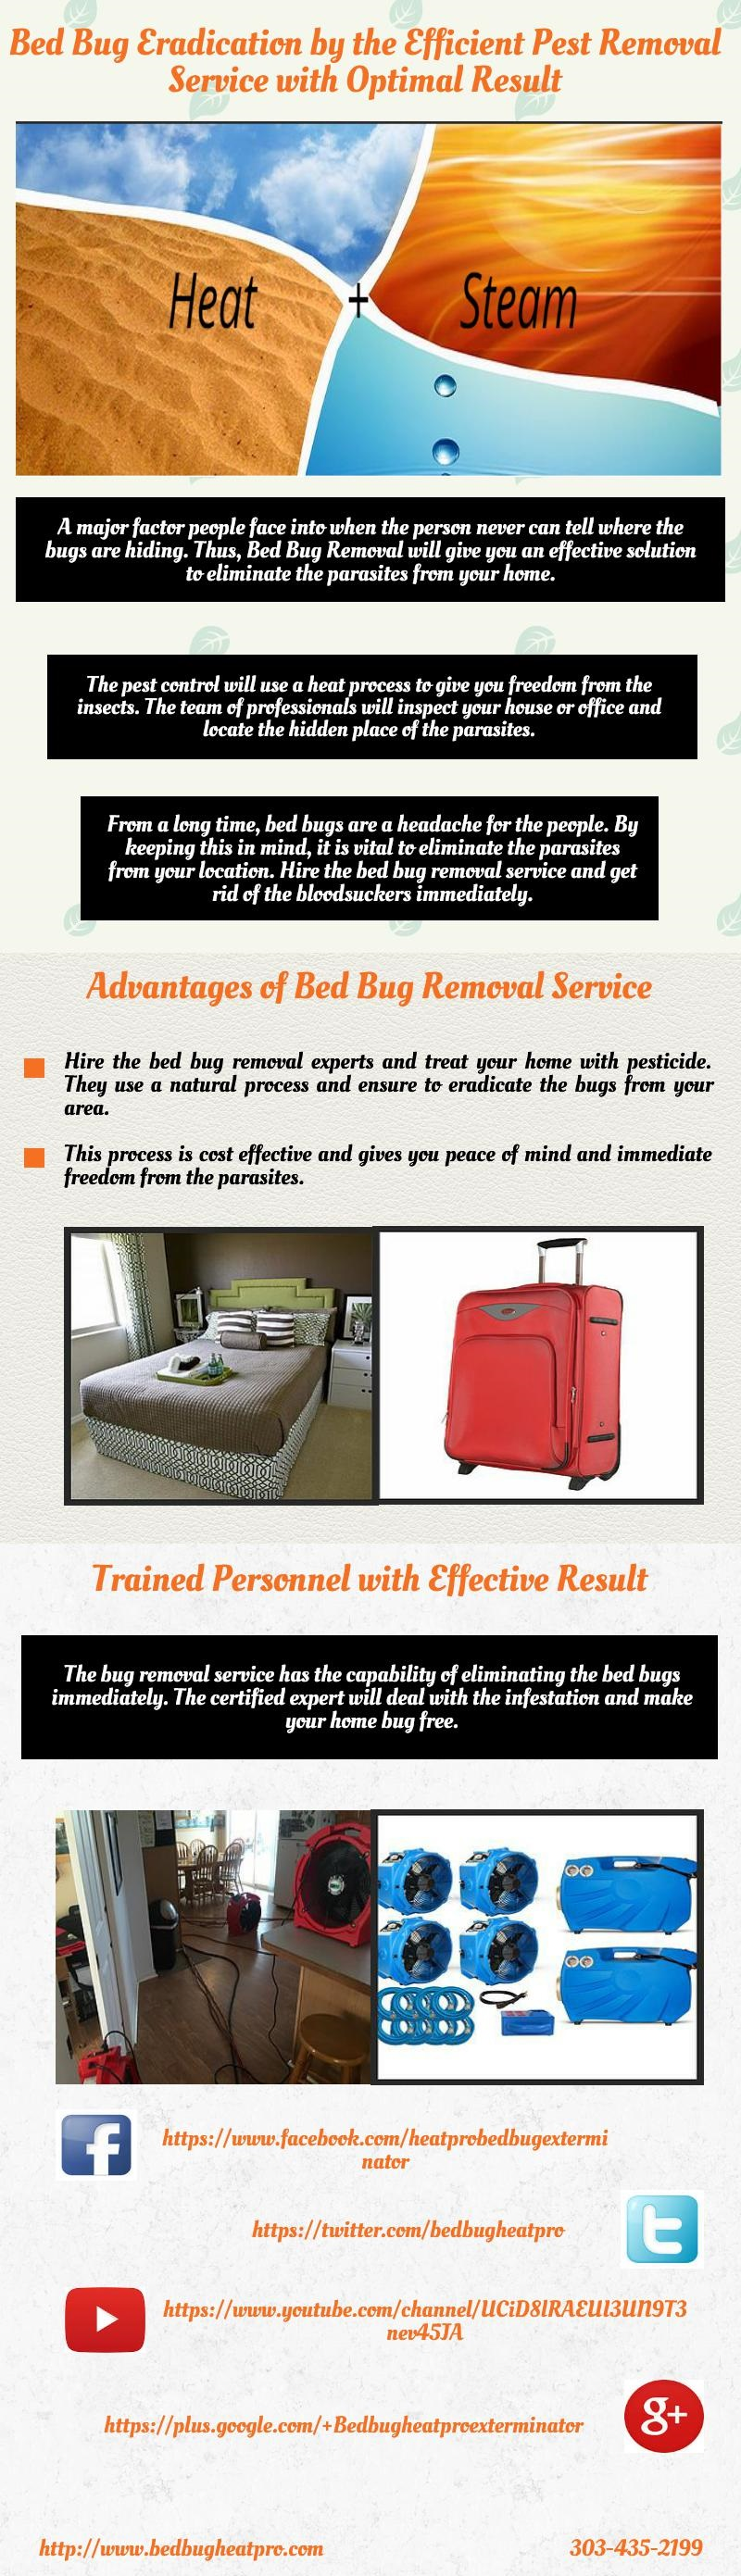 The pest control will use a heat process to give you